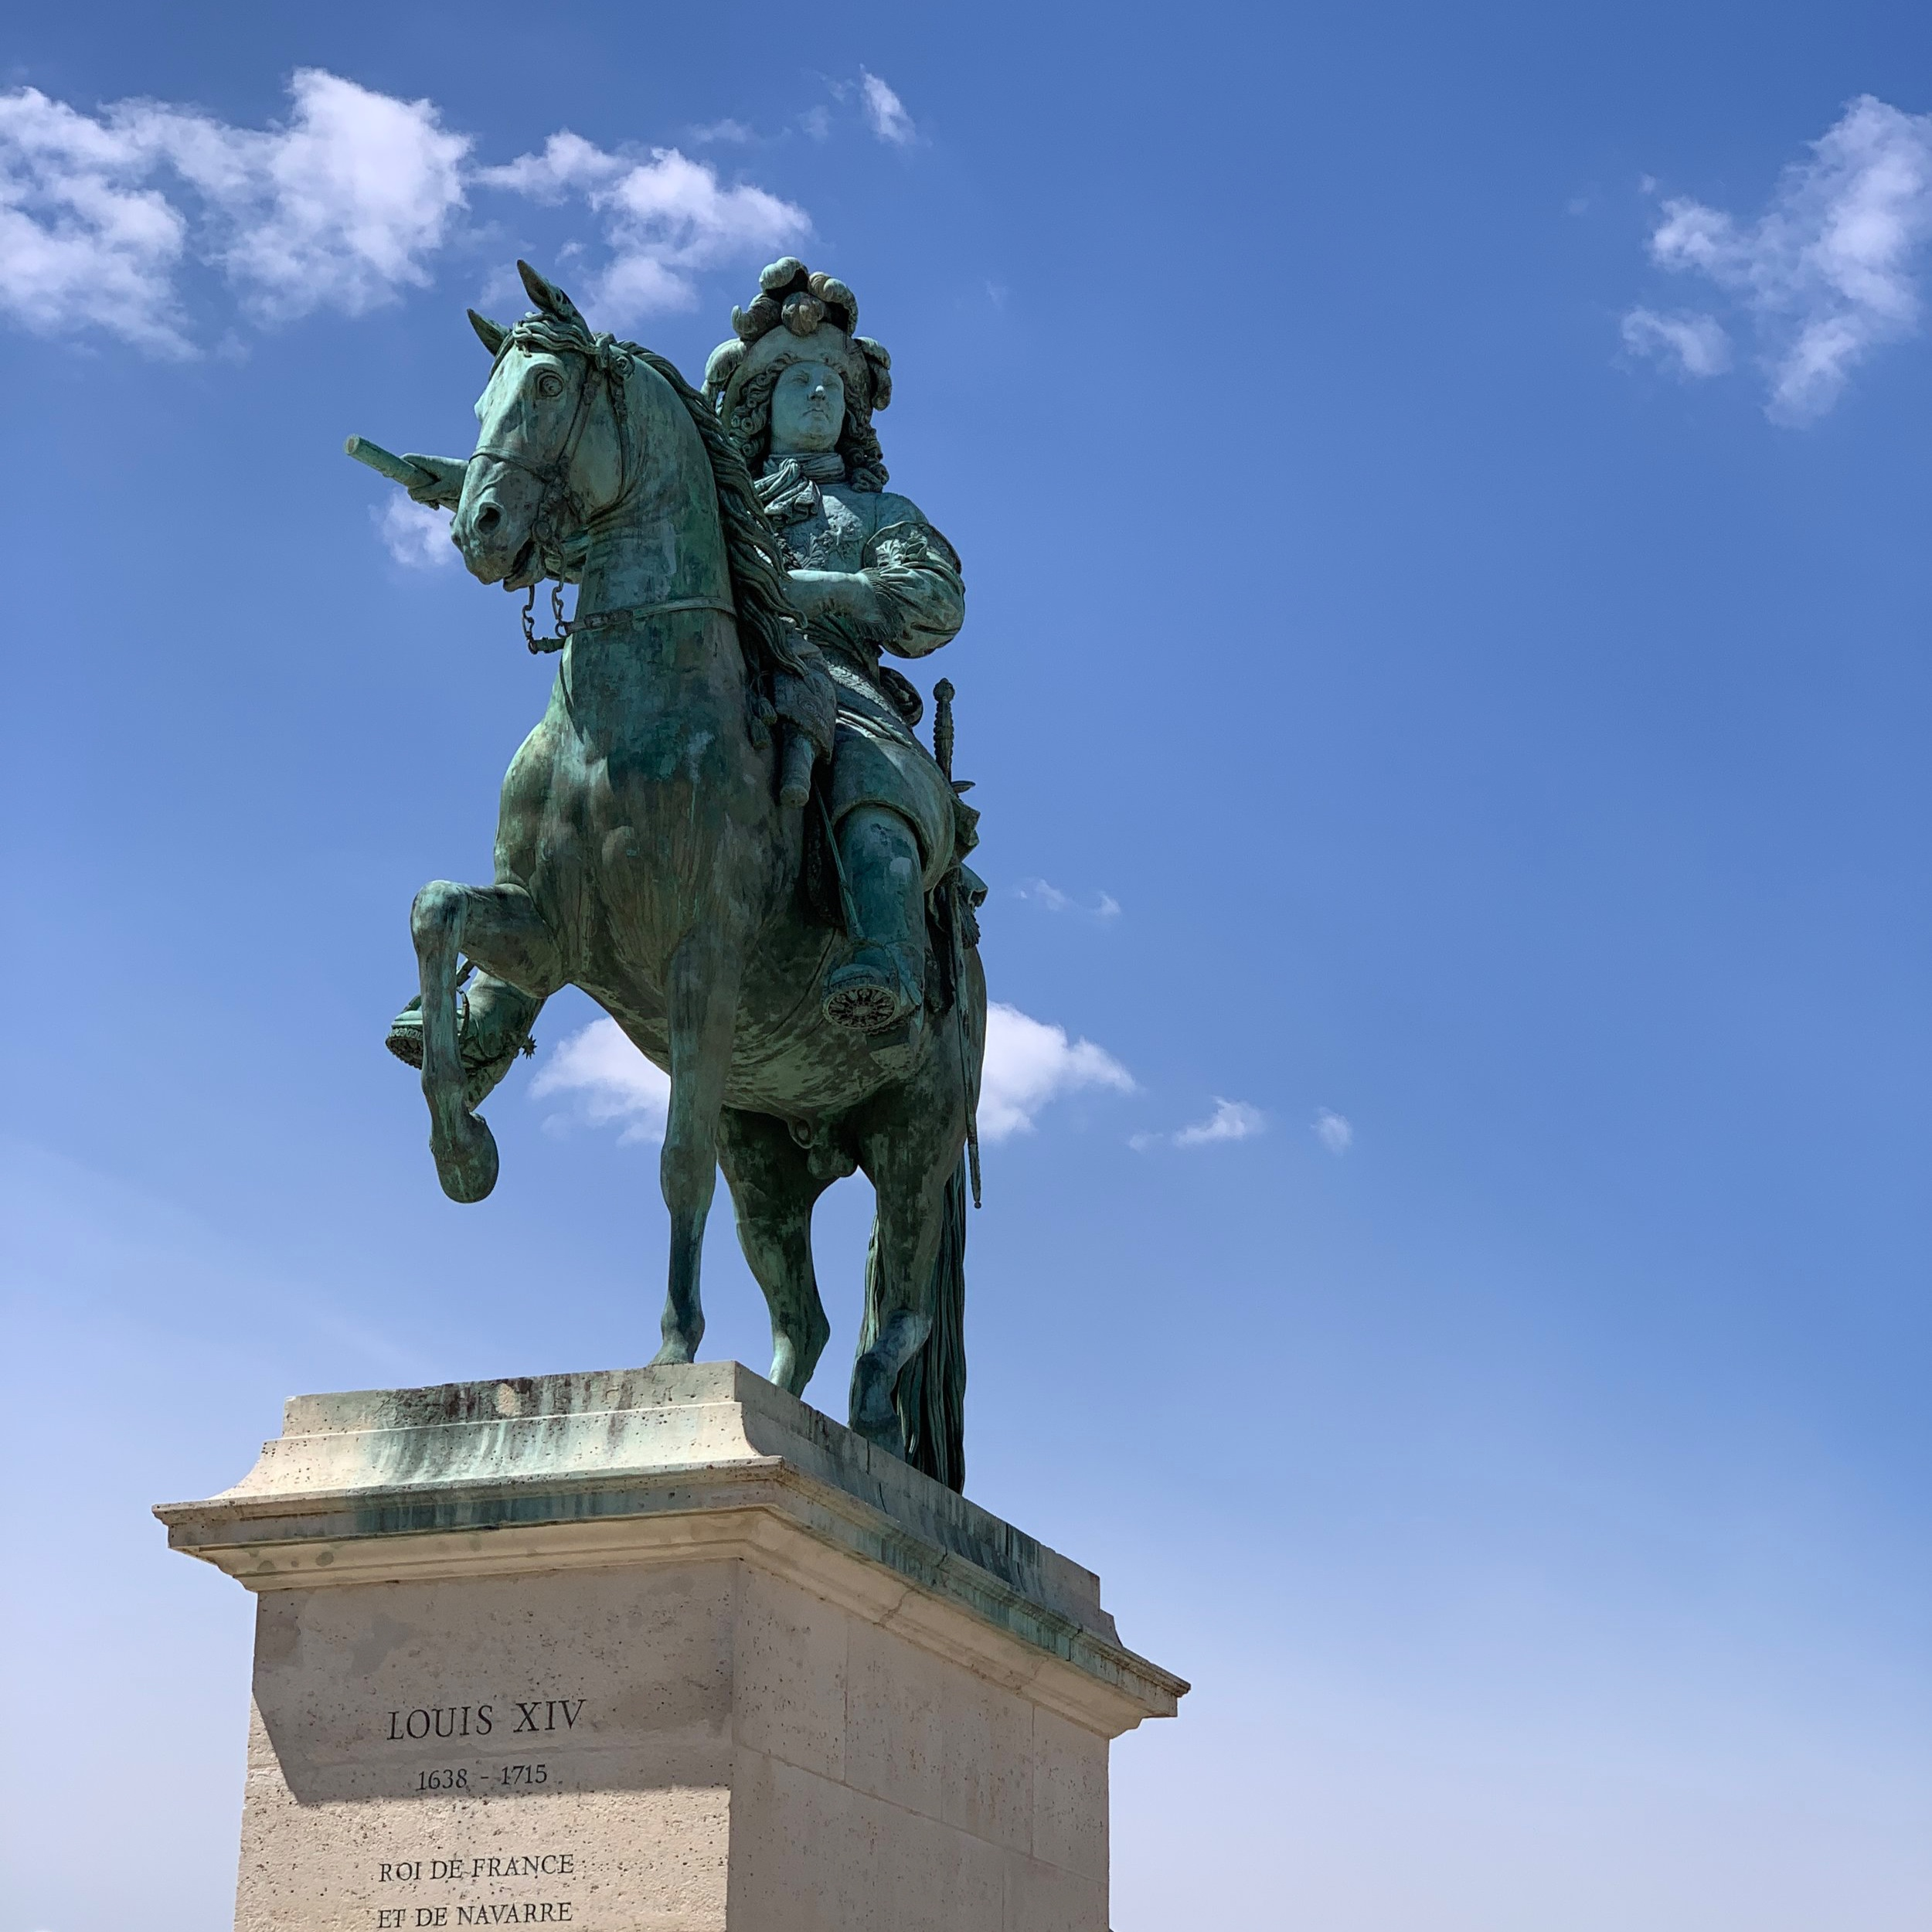 A statue of Louis the XIV.